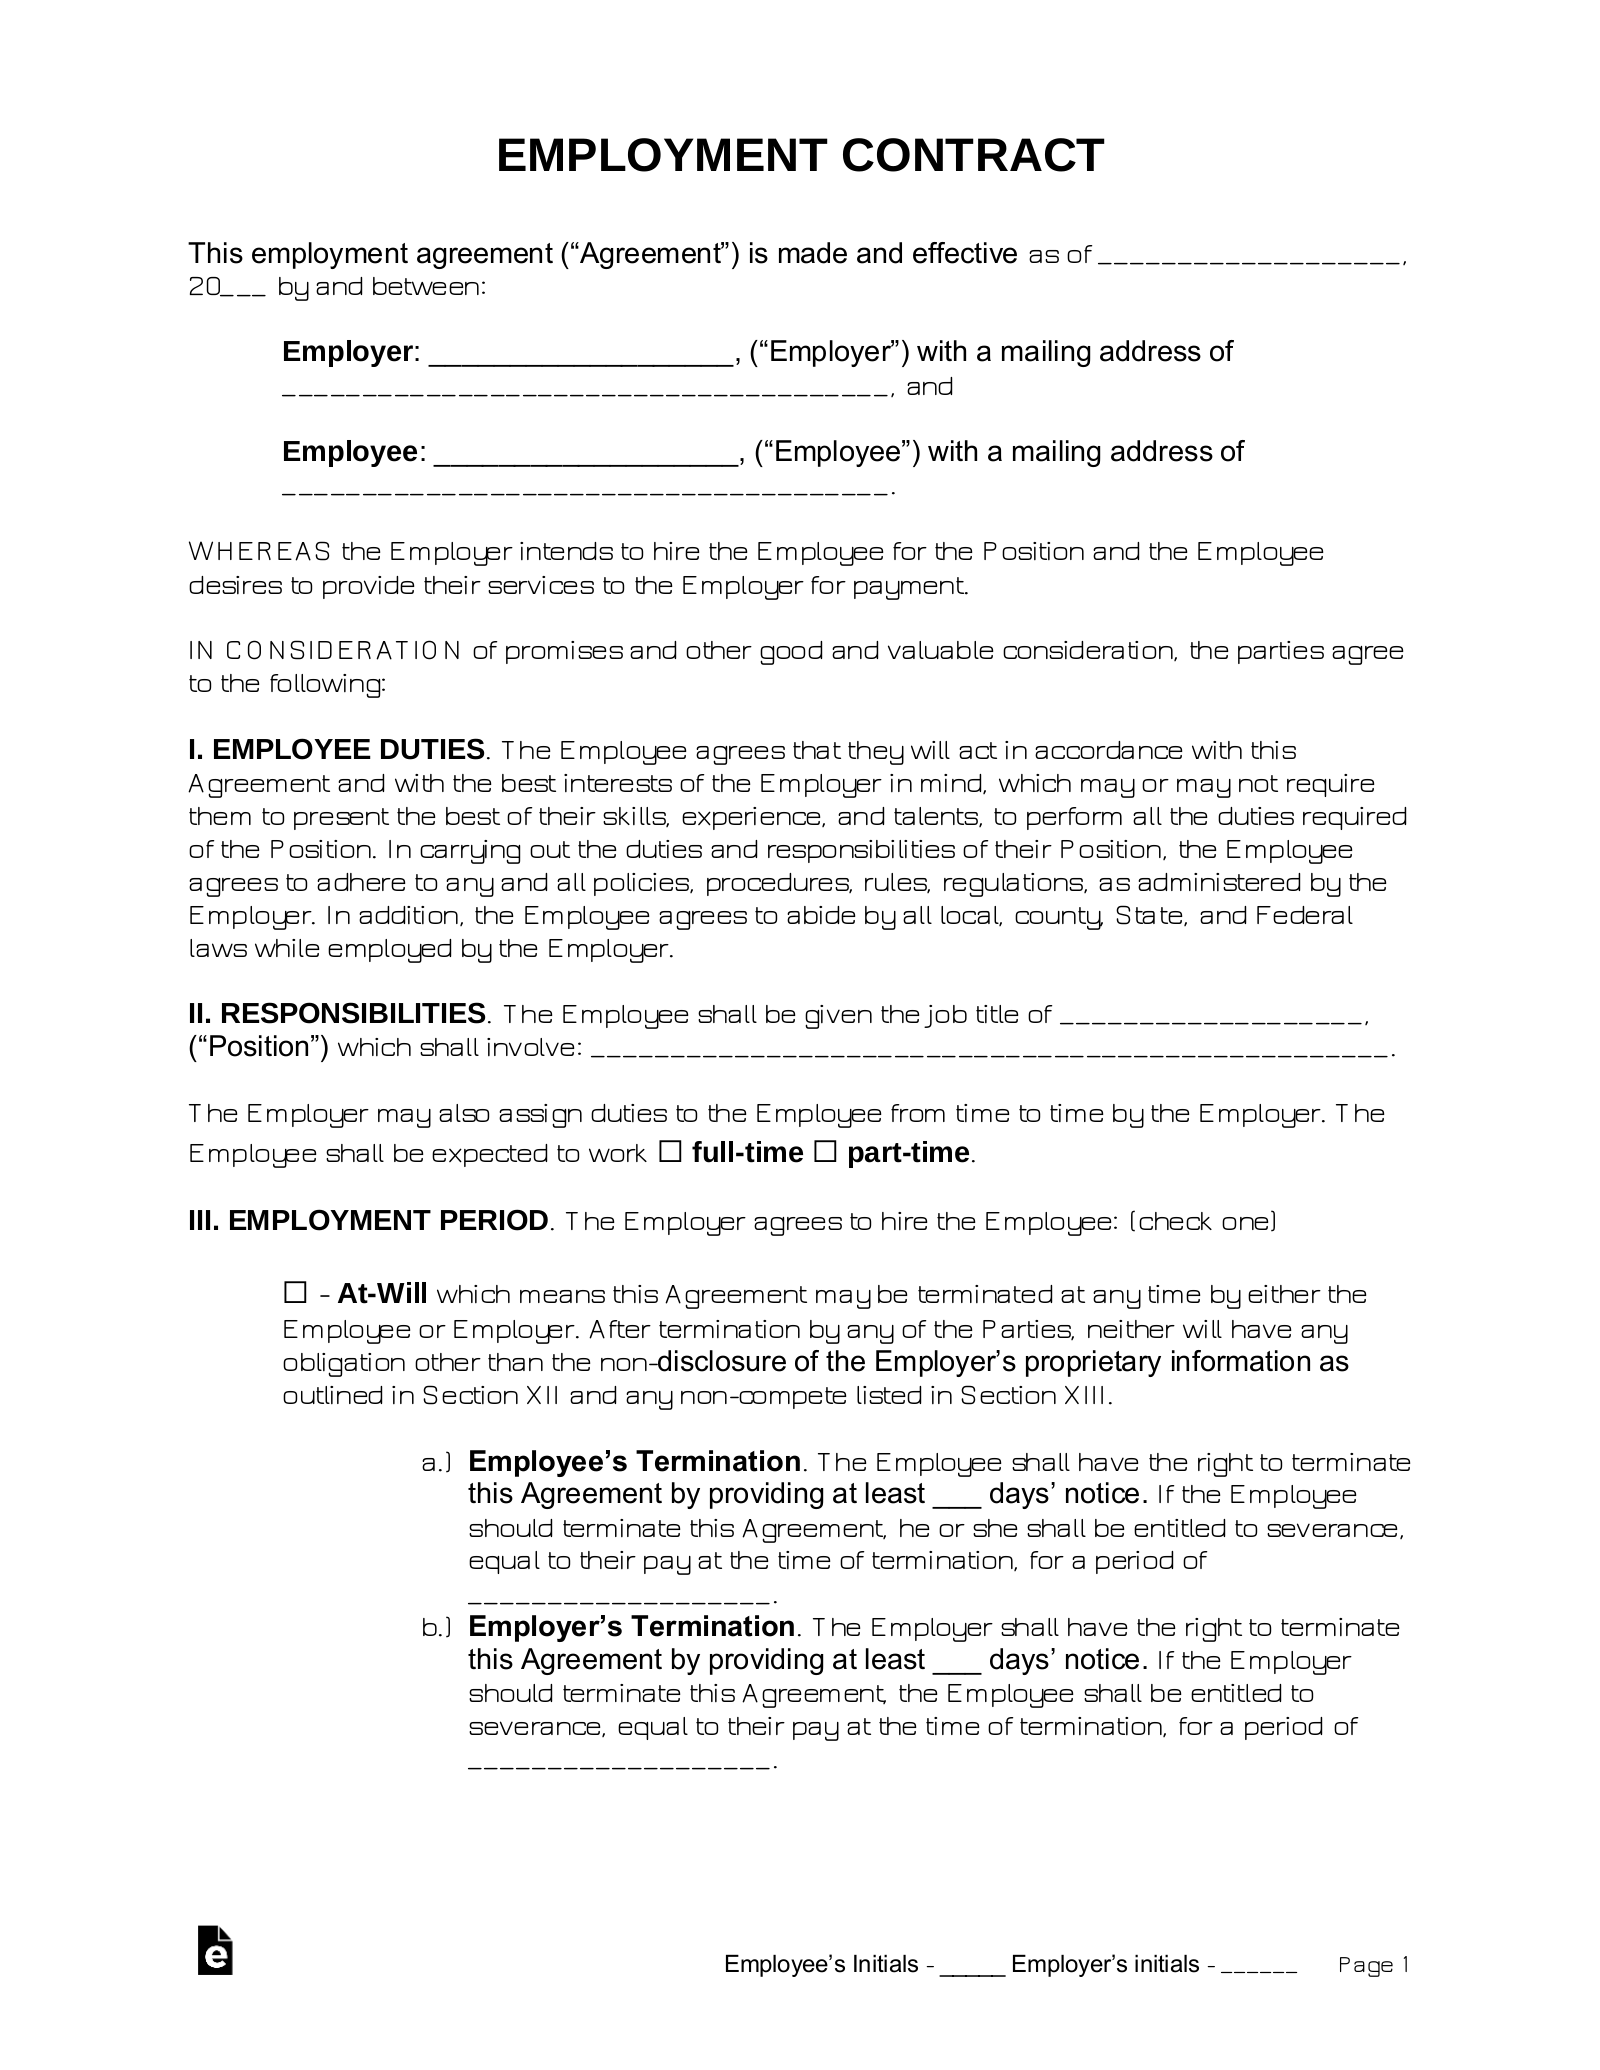 Free Employment Contract Agreement Pdf Word Eforms